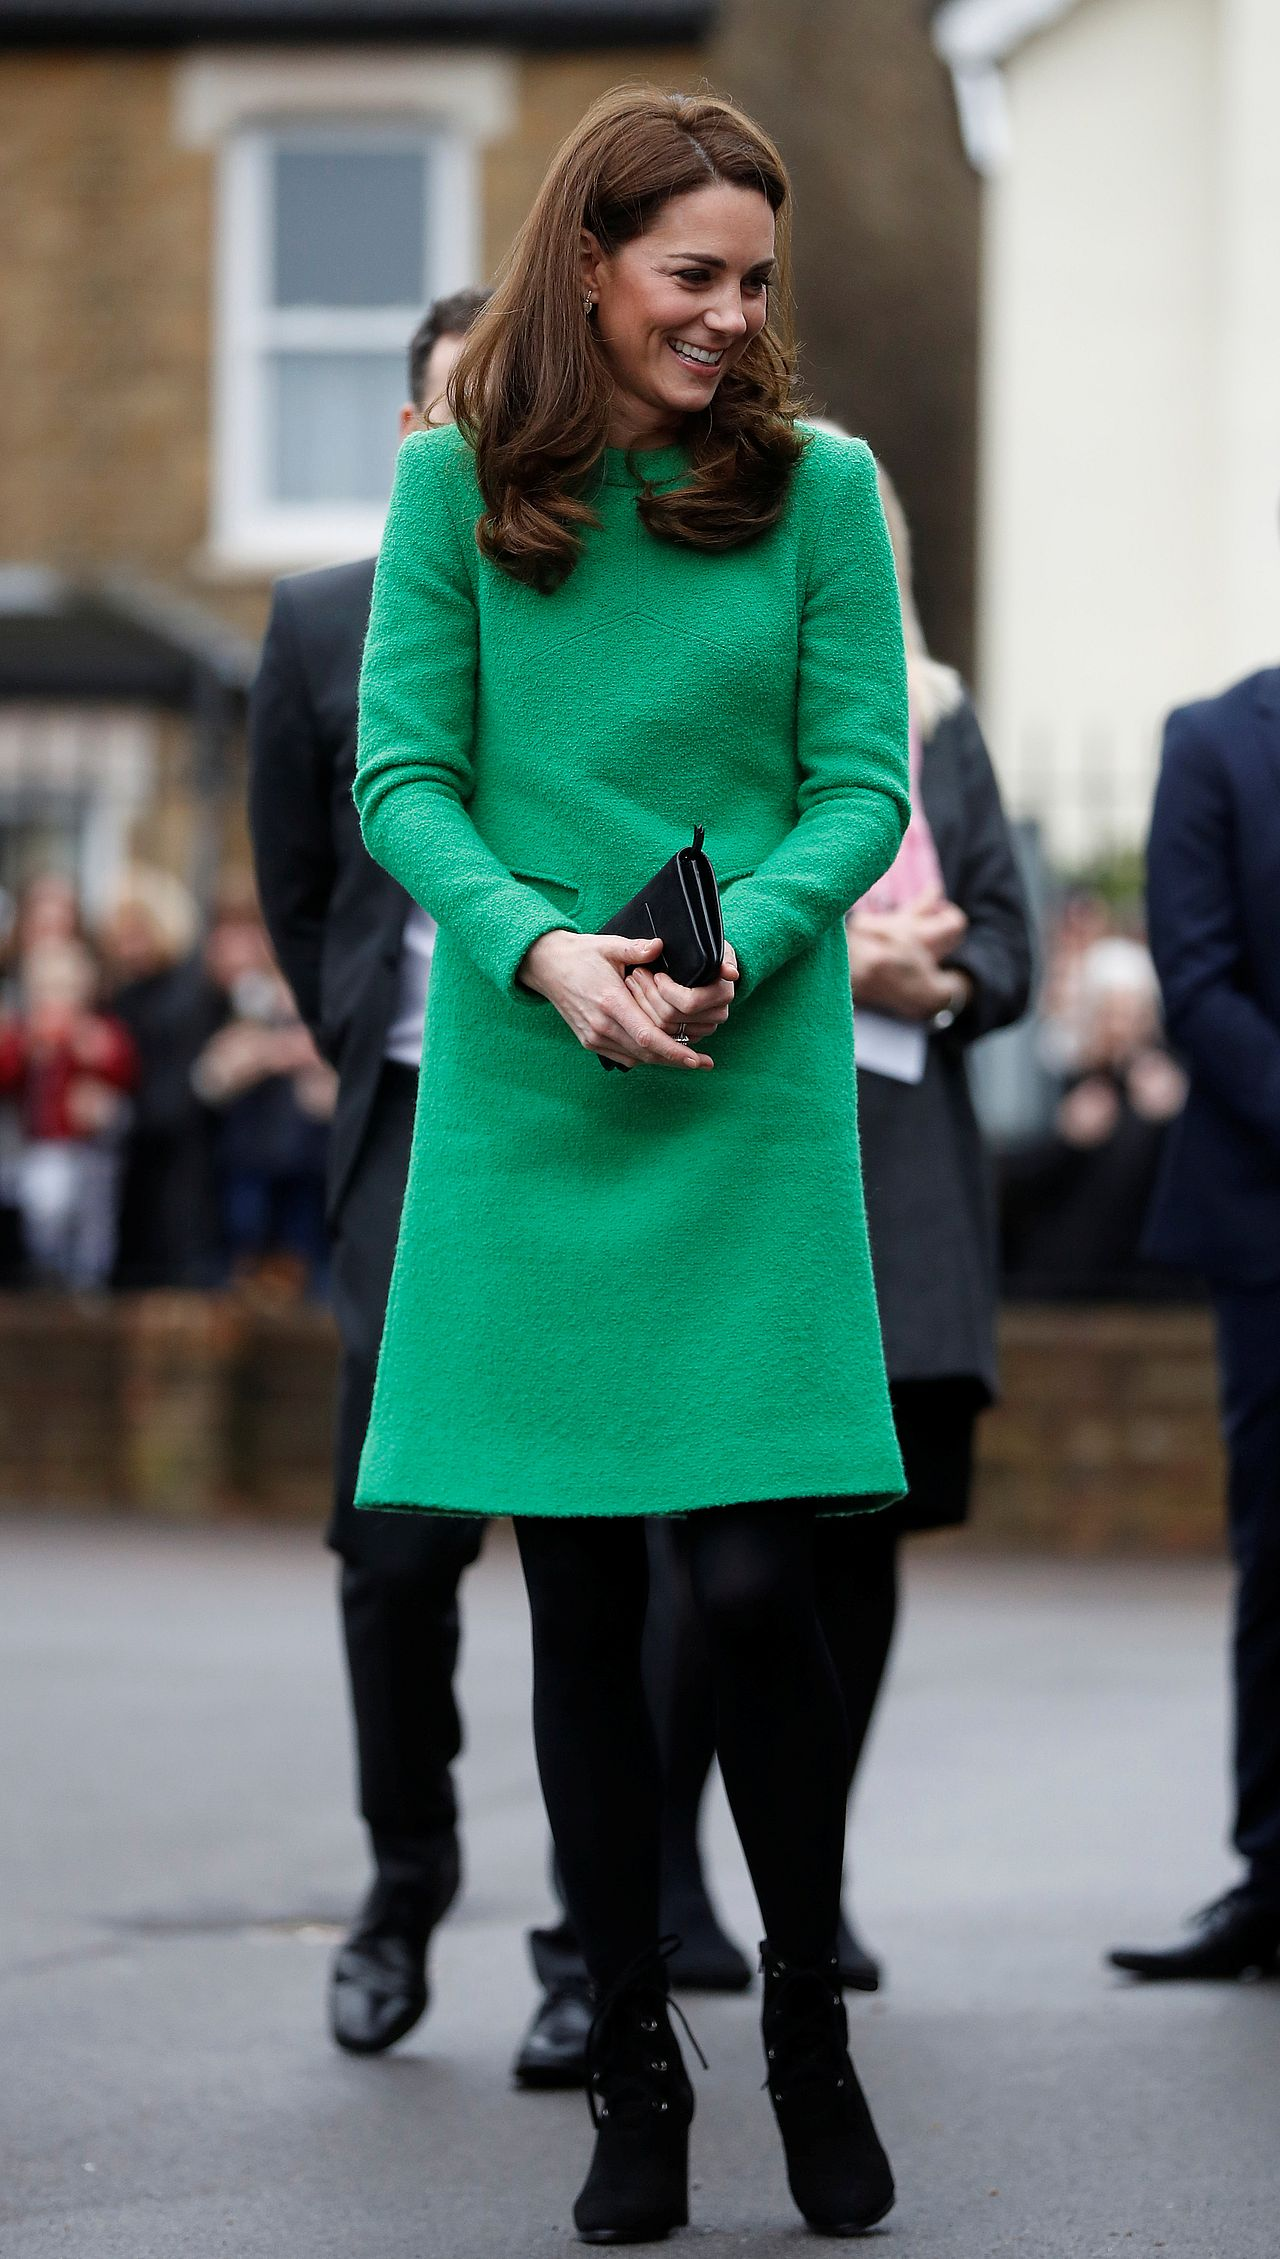 The Duchess Of Cambridge Visits Schools In Support Of Children's Mental Health